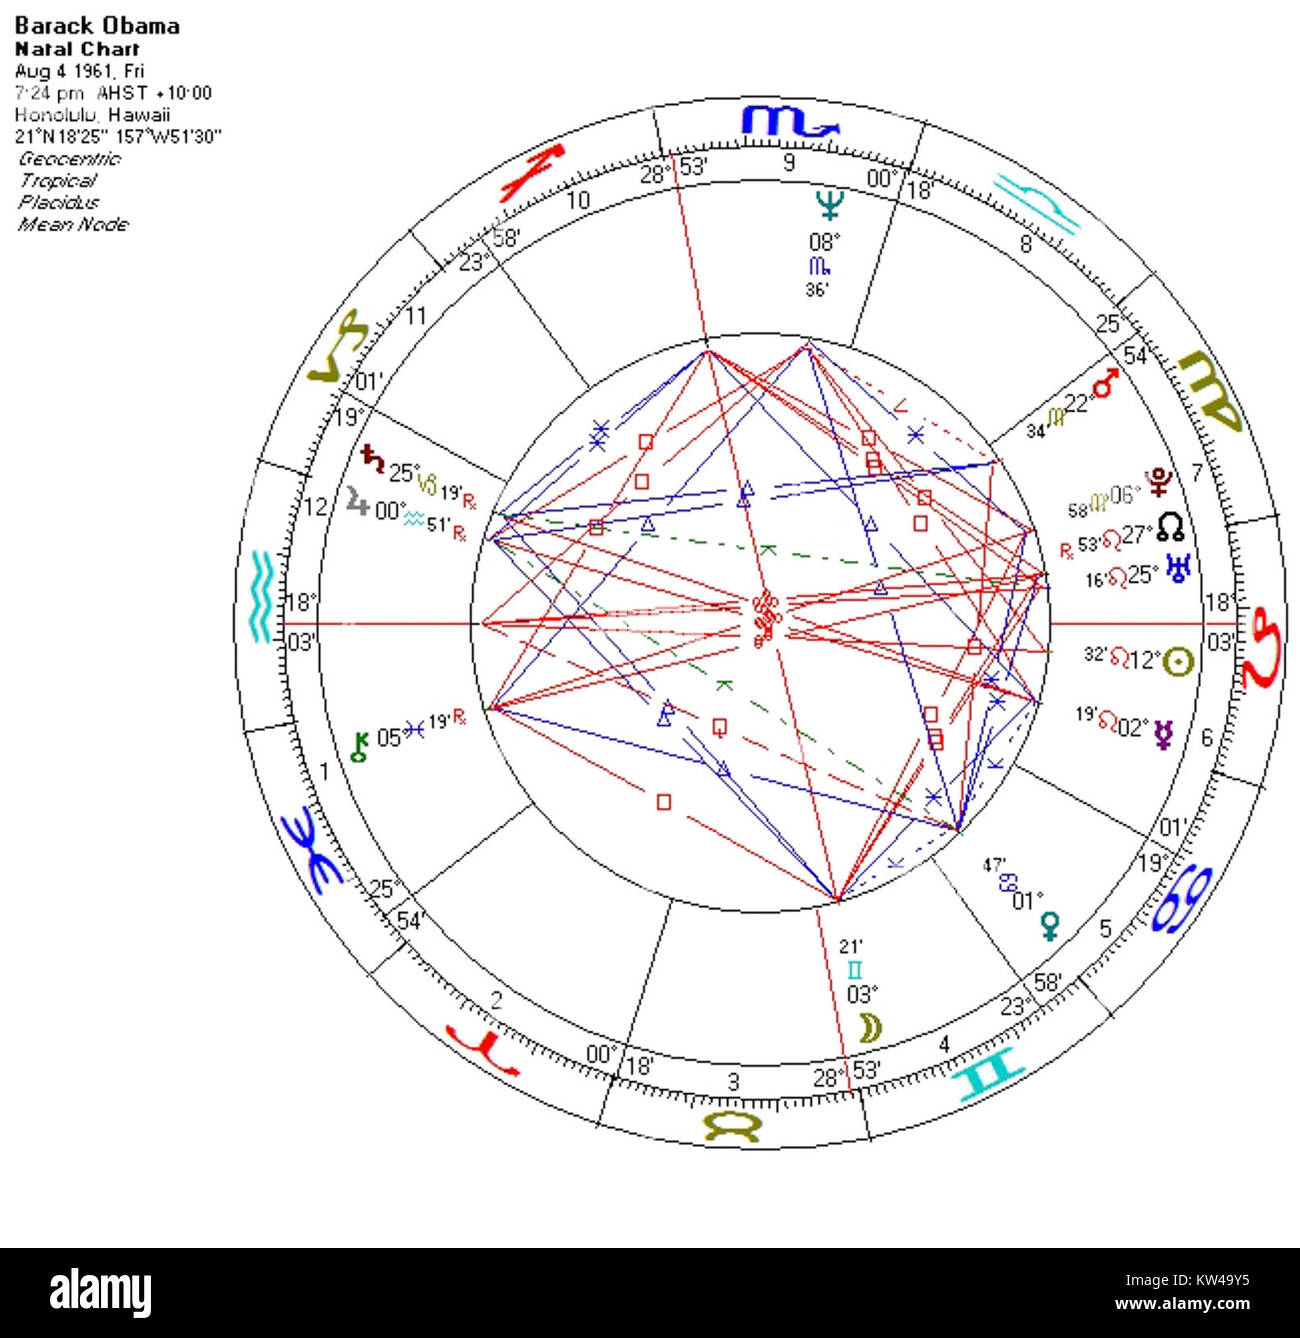 Birth chart for free choice image free any chart examples free online natal chart image collections free any chart examples natal chart predictions free choice image nvjuhfo Choice Image